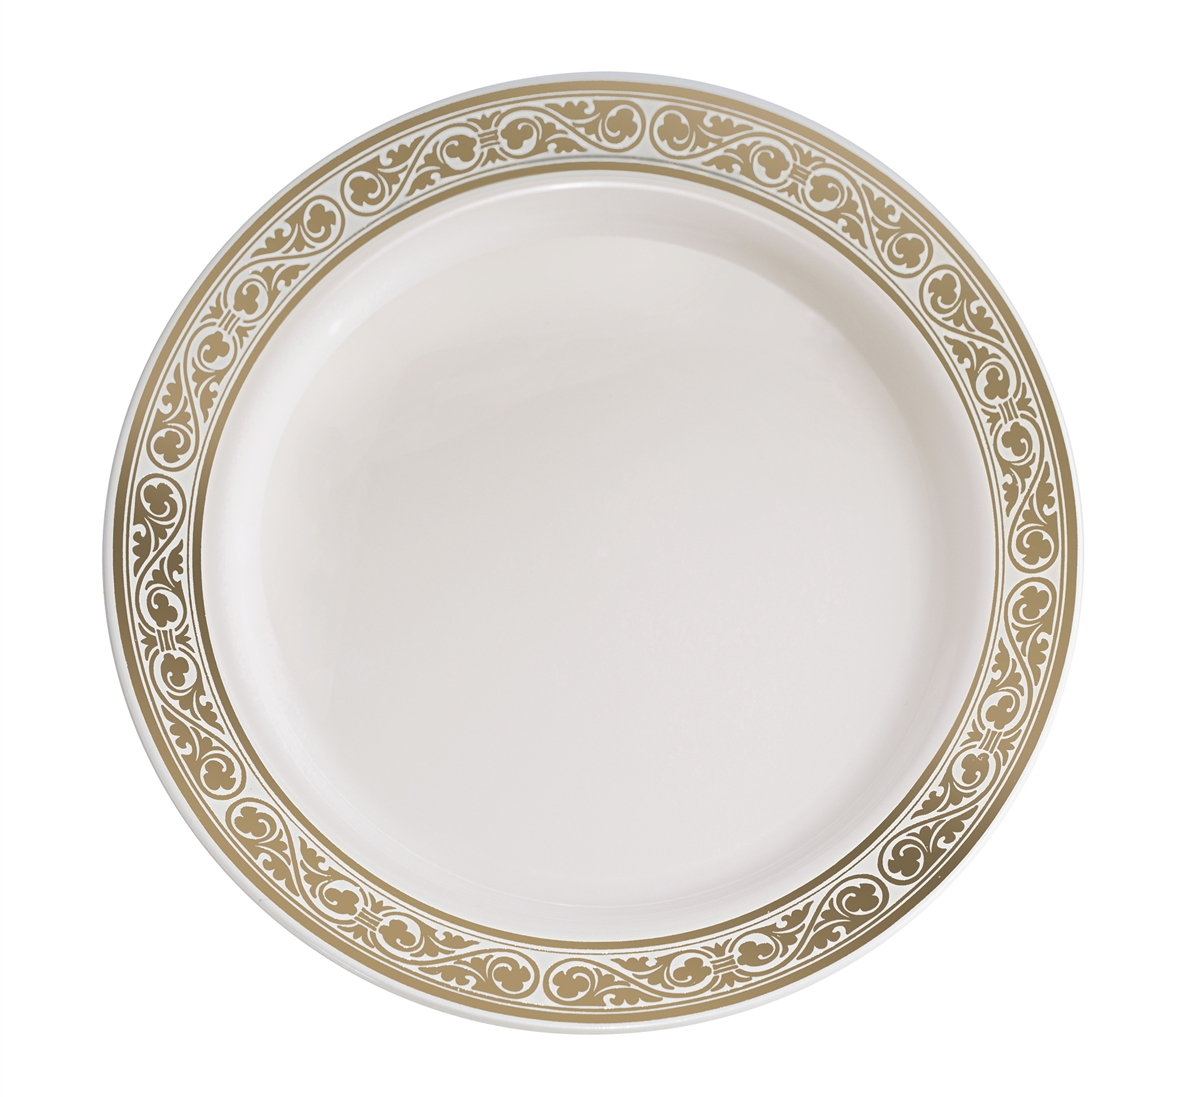 sc 1 st  The Closeout Connection & Royalty High End Plastic Plates - Ivory/Gold 10 Count